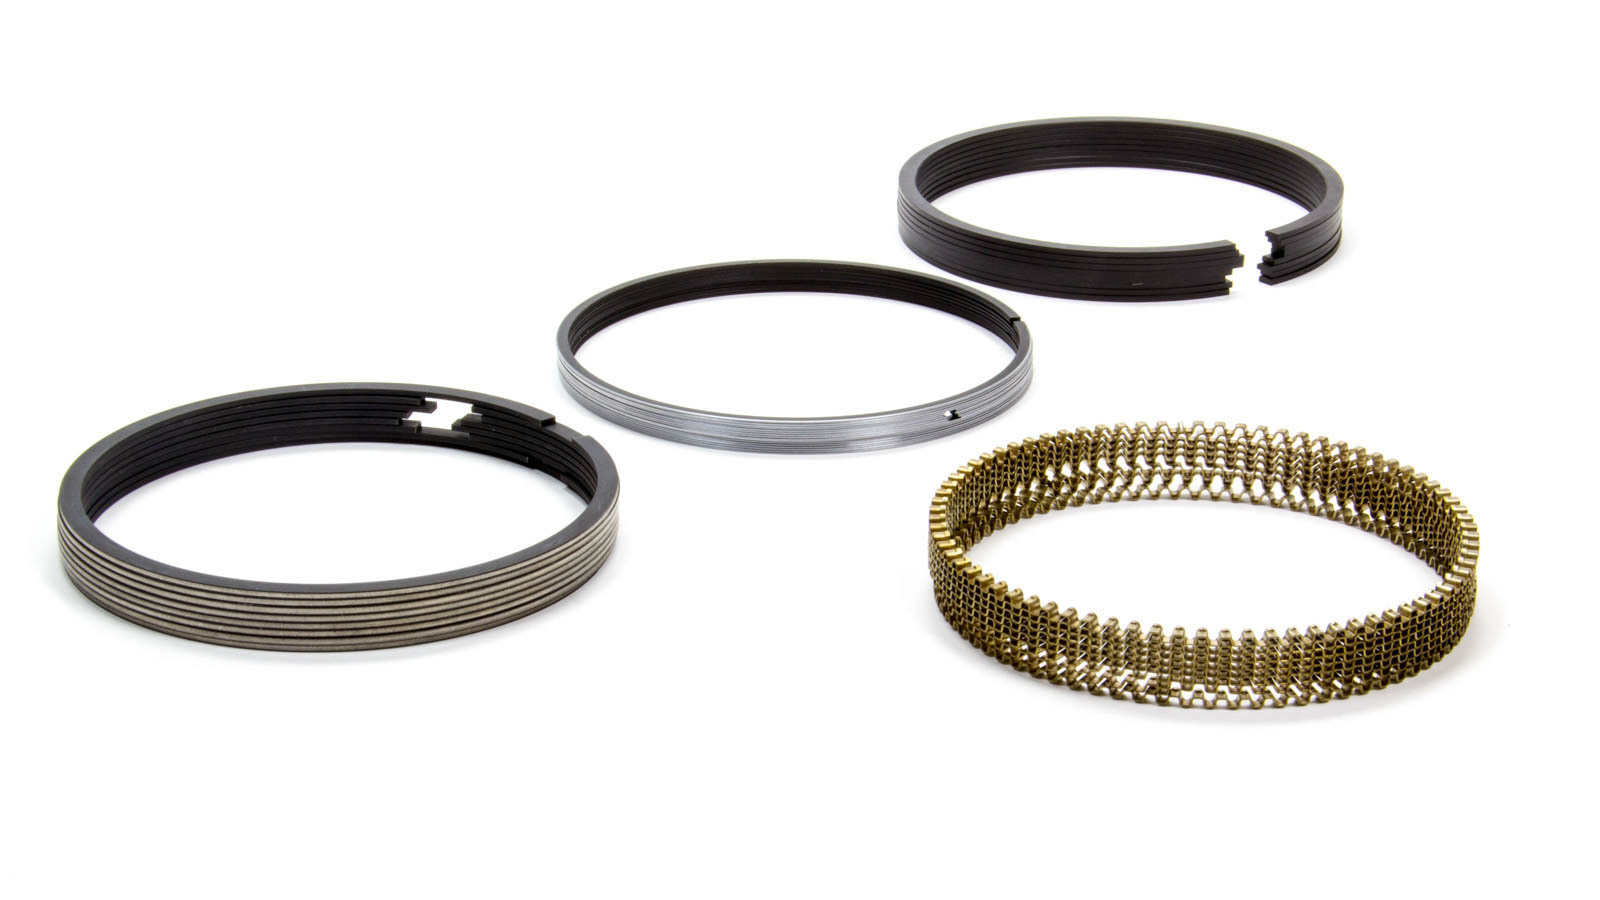 Total Seal CR0690-5 Piston Rings, Classic Race, 4.125 in Bore, File Fit, 1/16 x 1/16 x 3/16 in Thick, Standard Tension, Ductile Iron, 8 Cylinder, Kit